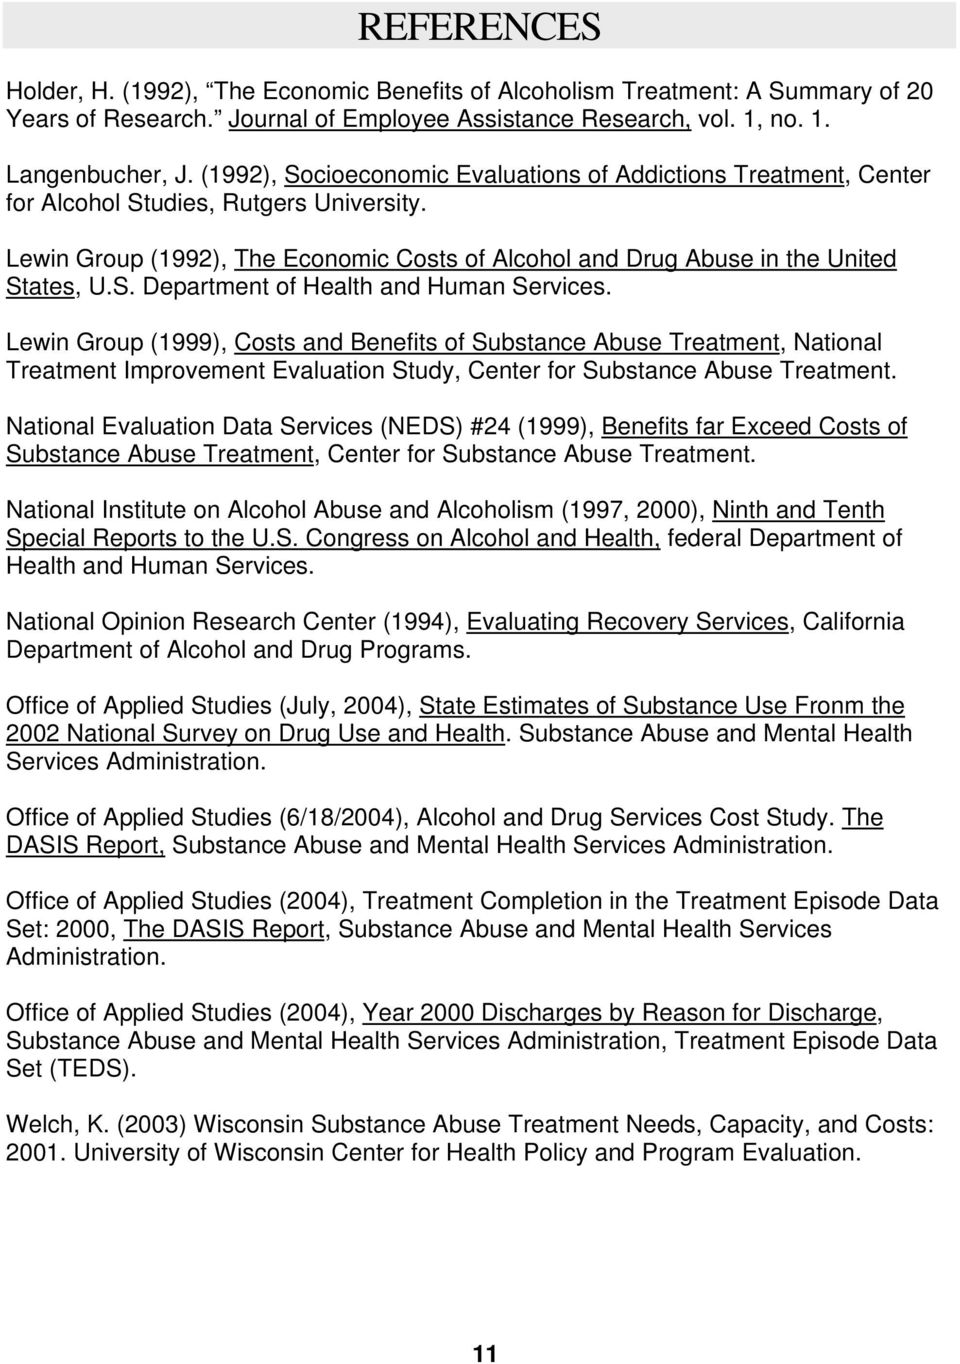 Lewin Group (1999), Costs and Benefits of Substance Abuse Treatment, National Treatment Improvement Evaluation Study, Center for Substance Abuse Treatment.